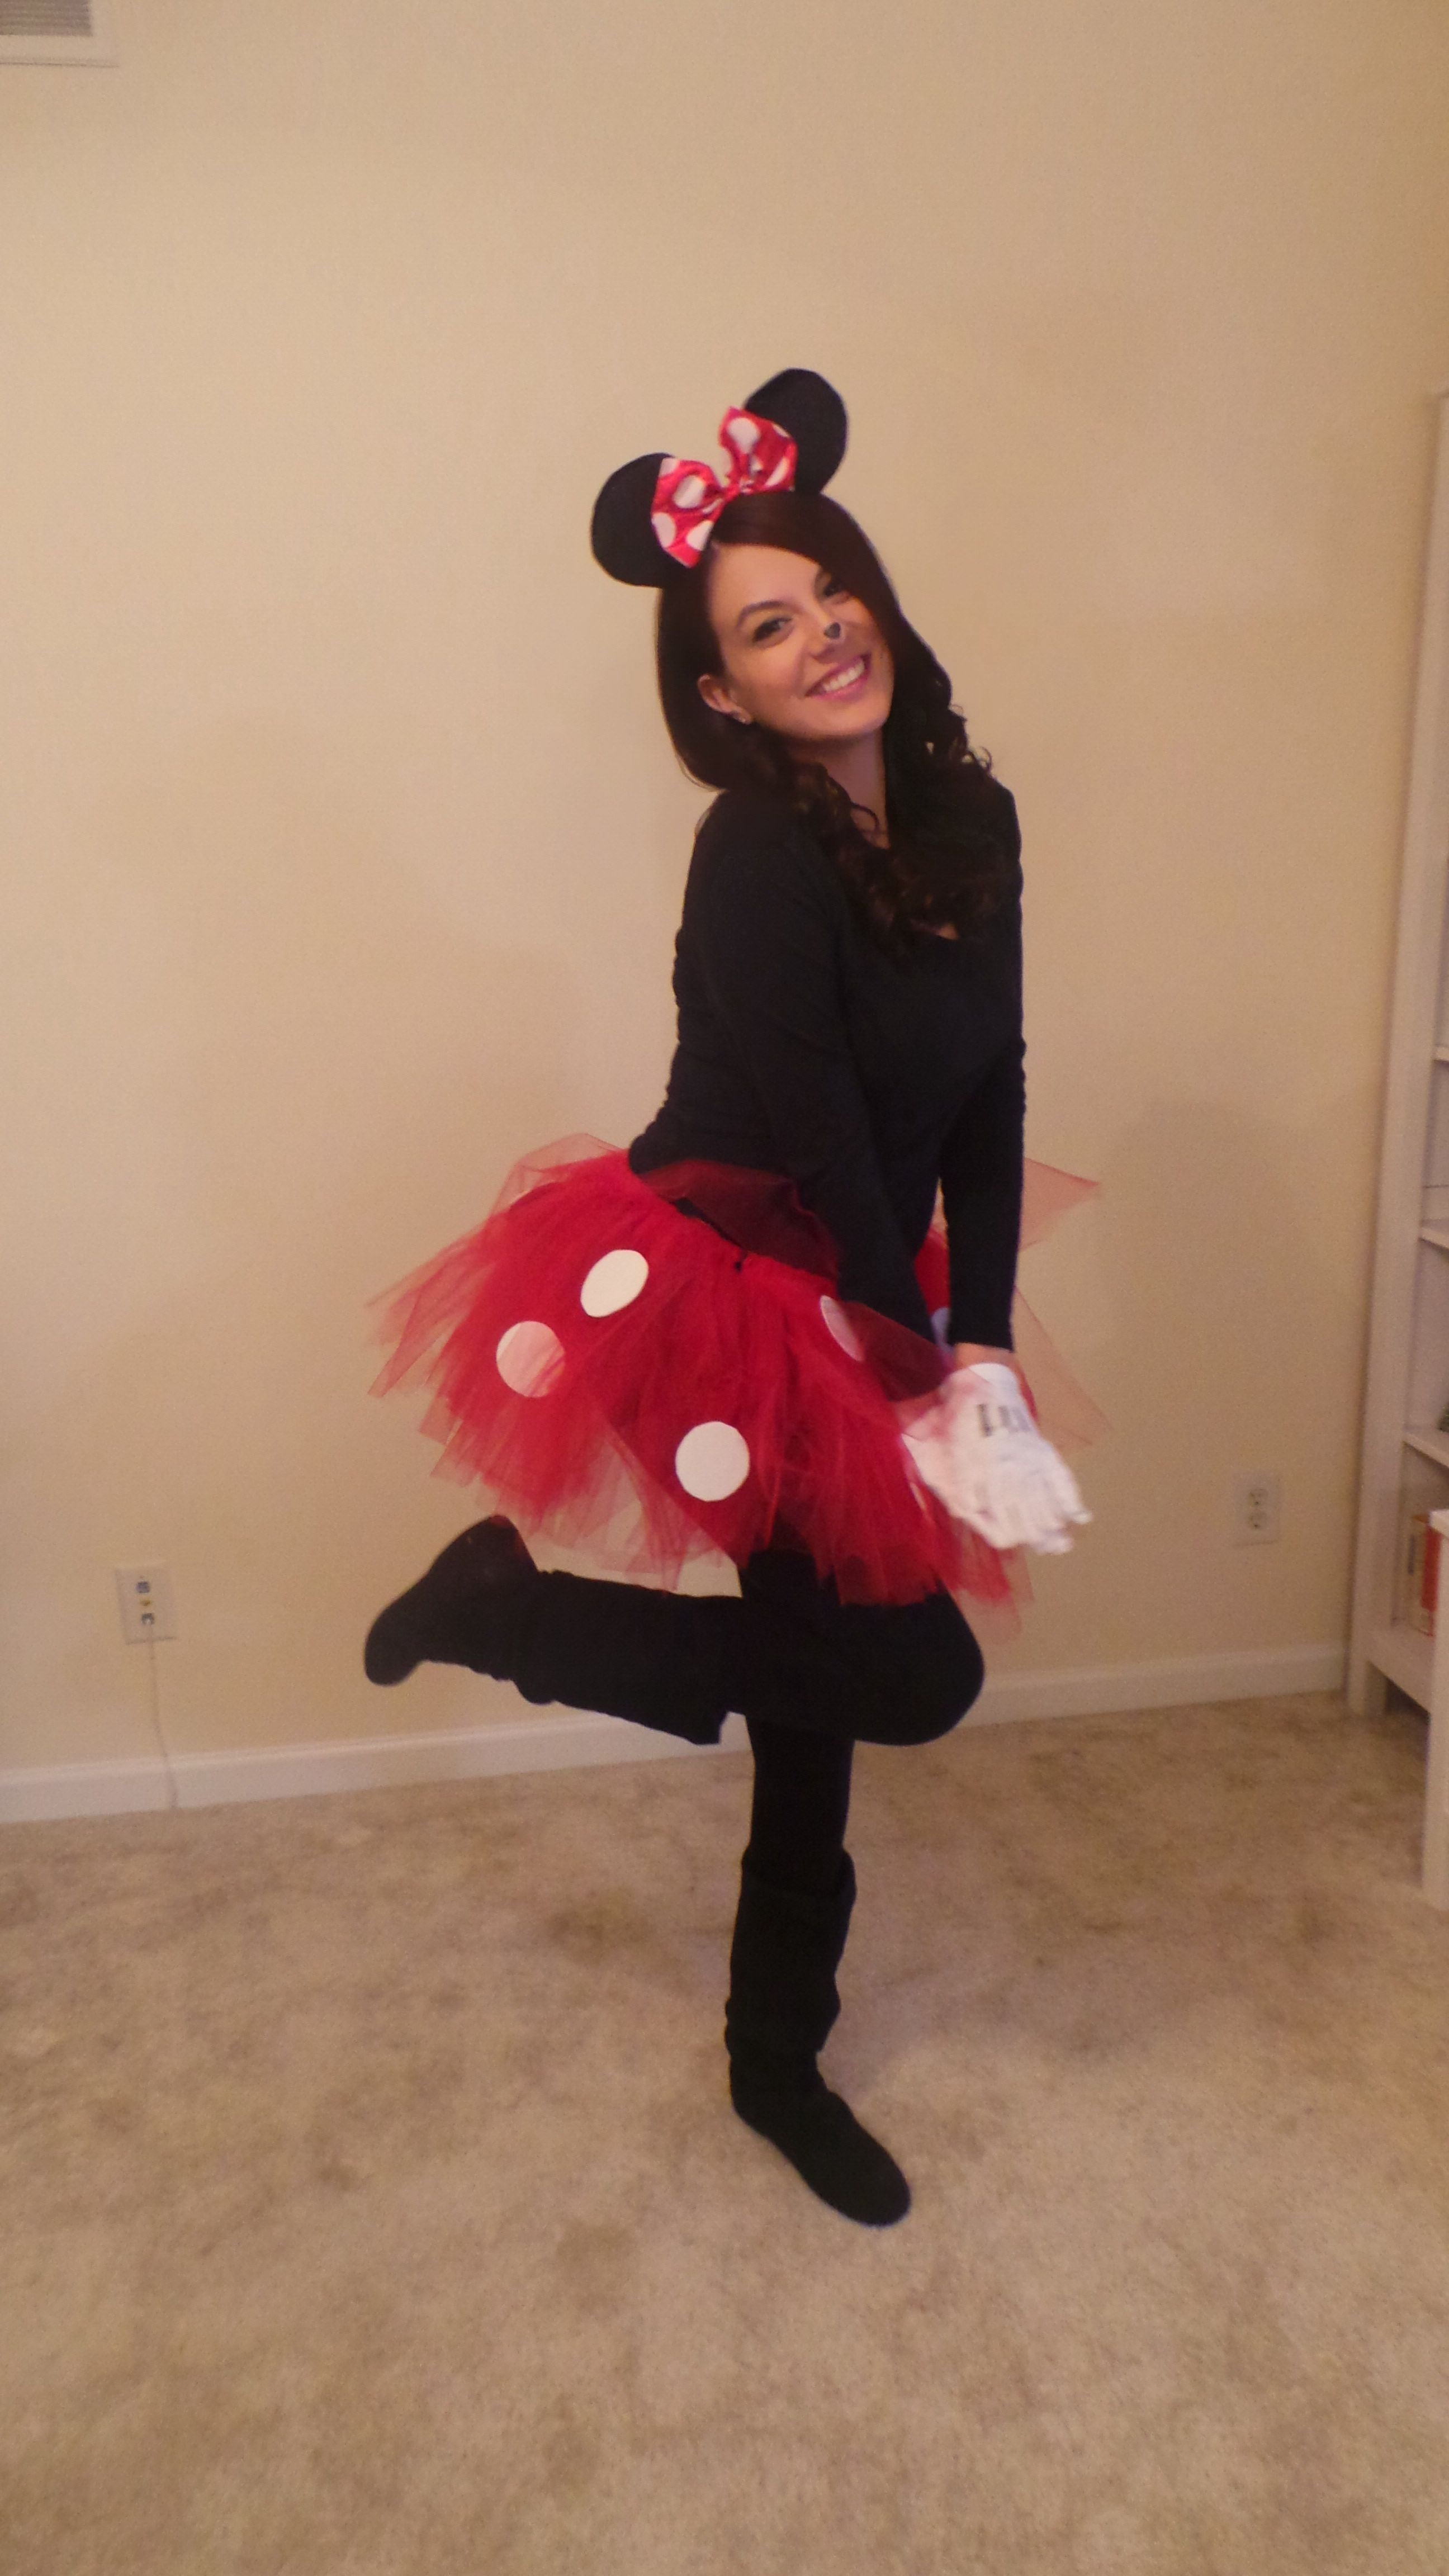 10 Great Minnie Mouse Costume Ideas For Women diy minnie mouse costume my style pinterest minnie mouse 2020